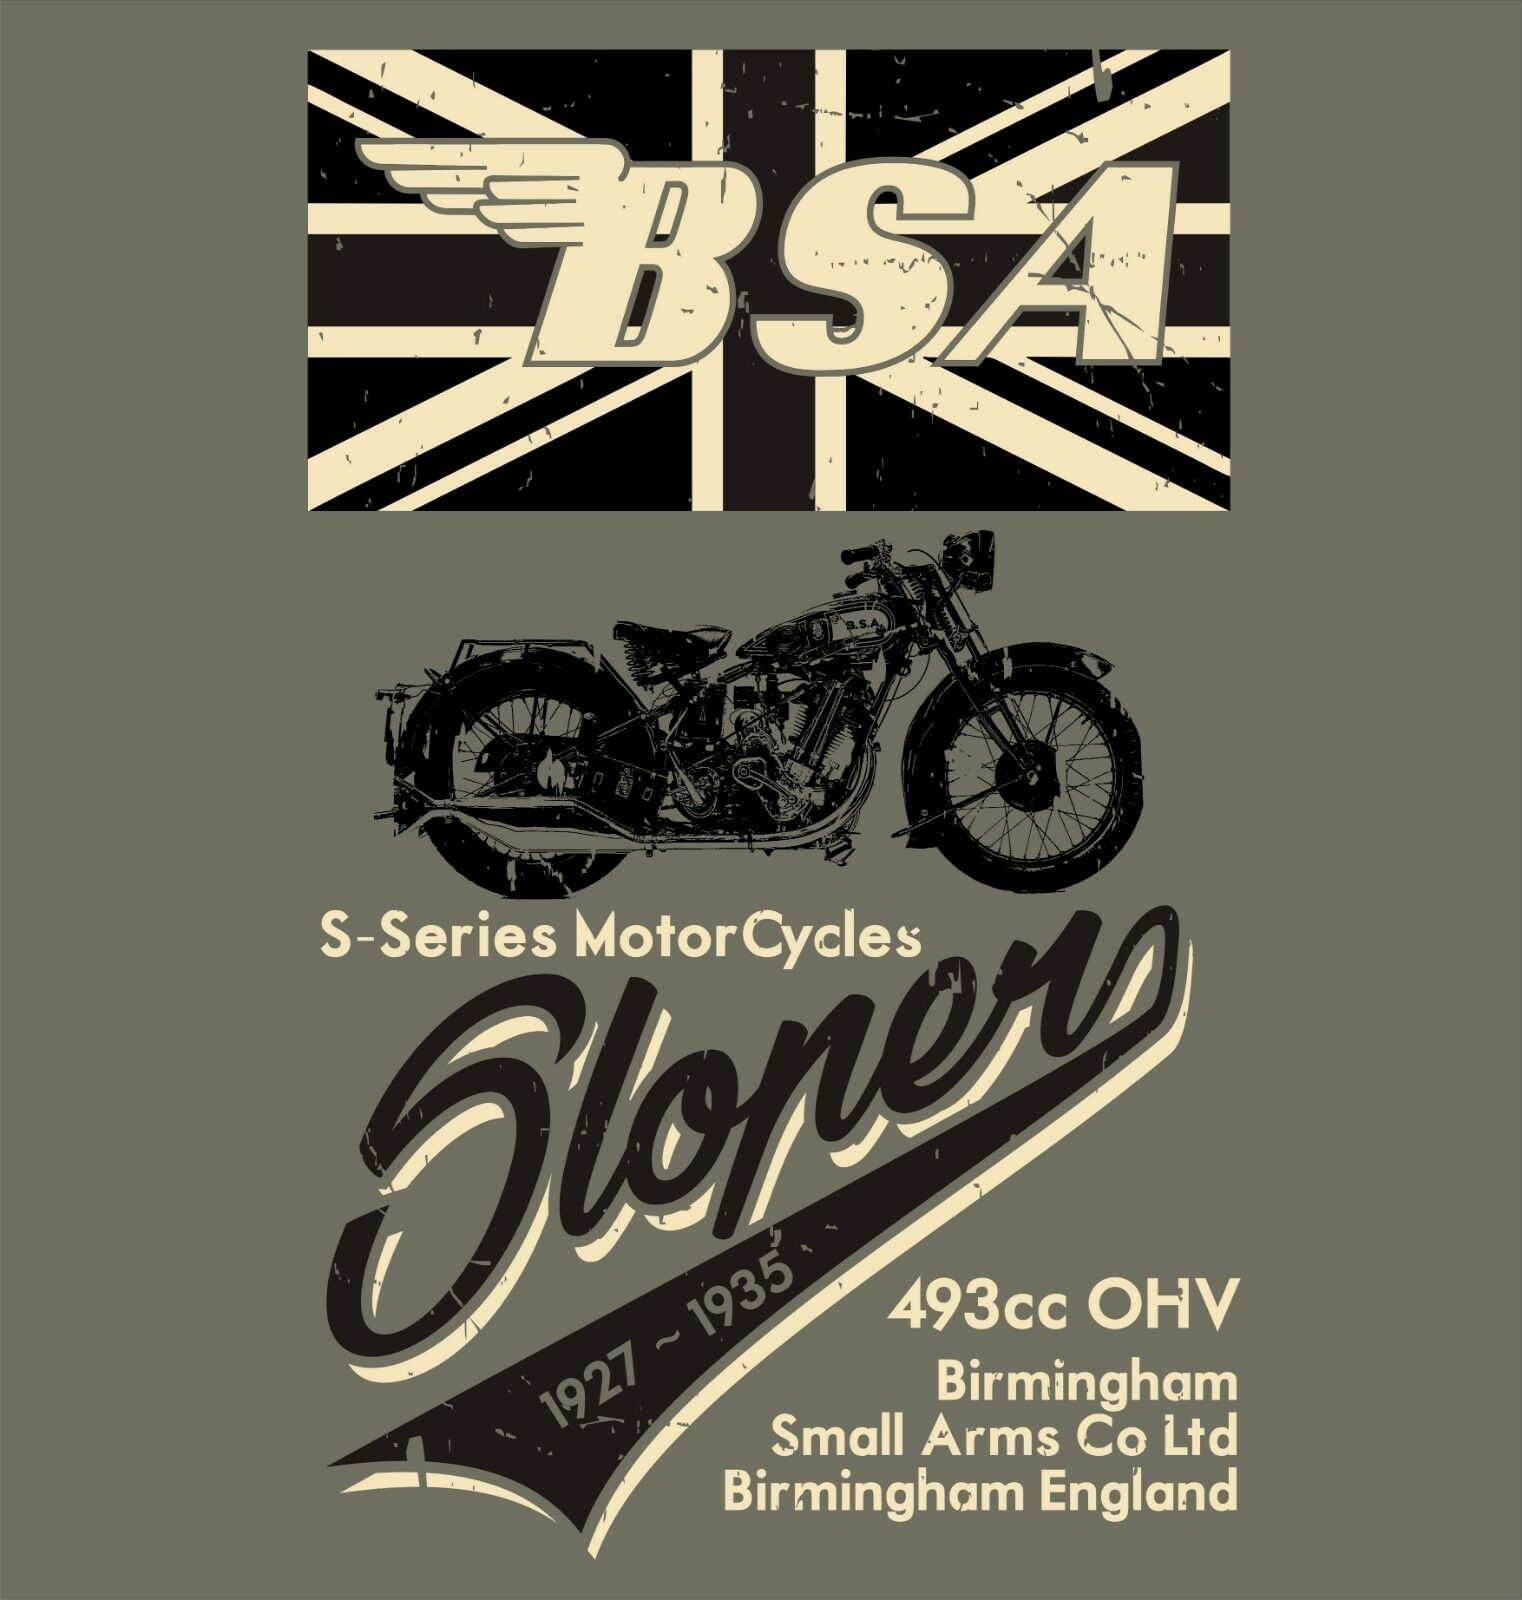 <font><b>BSA</b></font> BIKER T <font><b>SHIRT</b></font> Chopper Bobber Vintage Retro Distressed design tee Apparel image